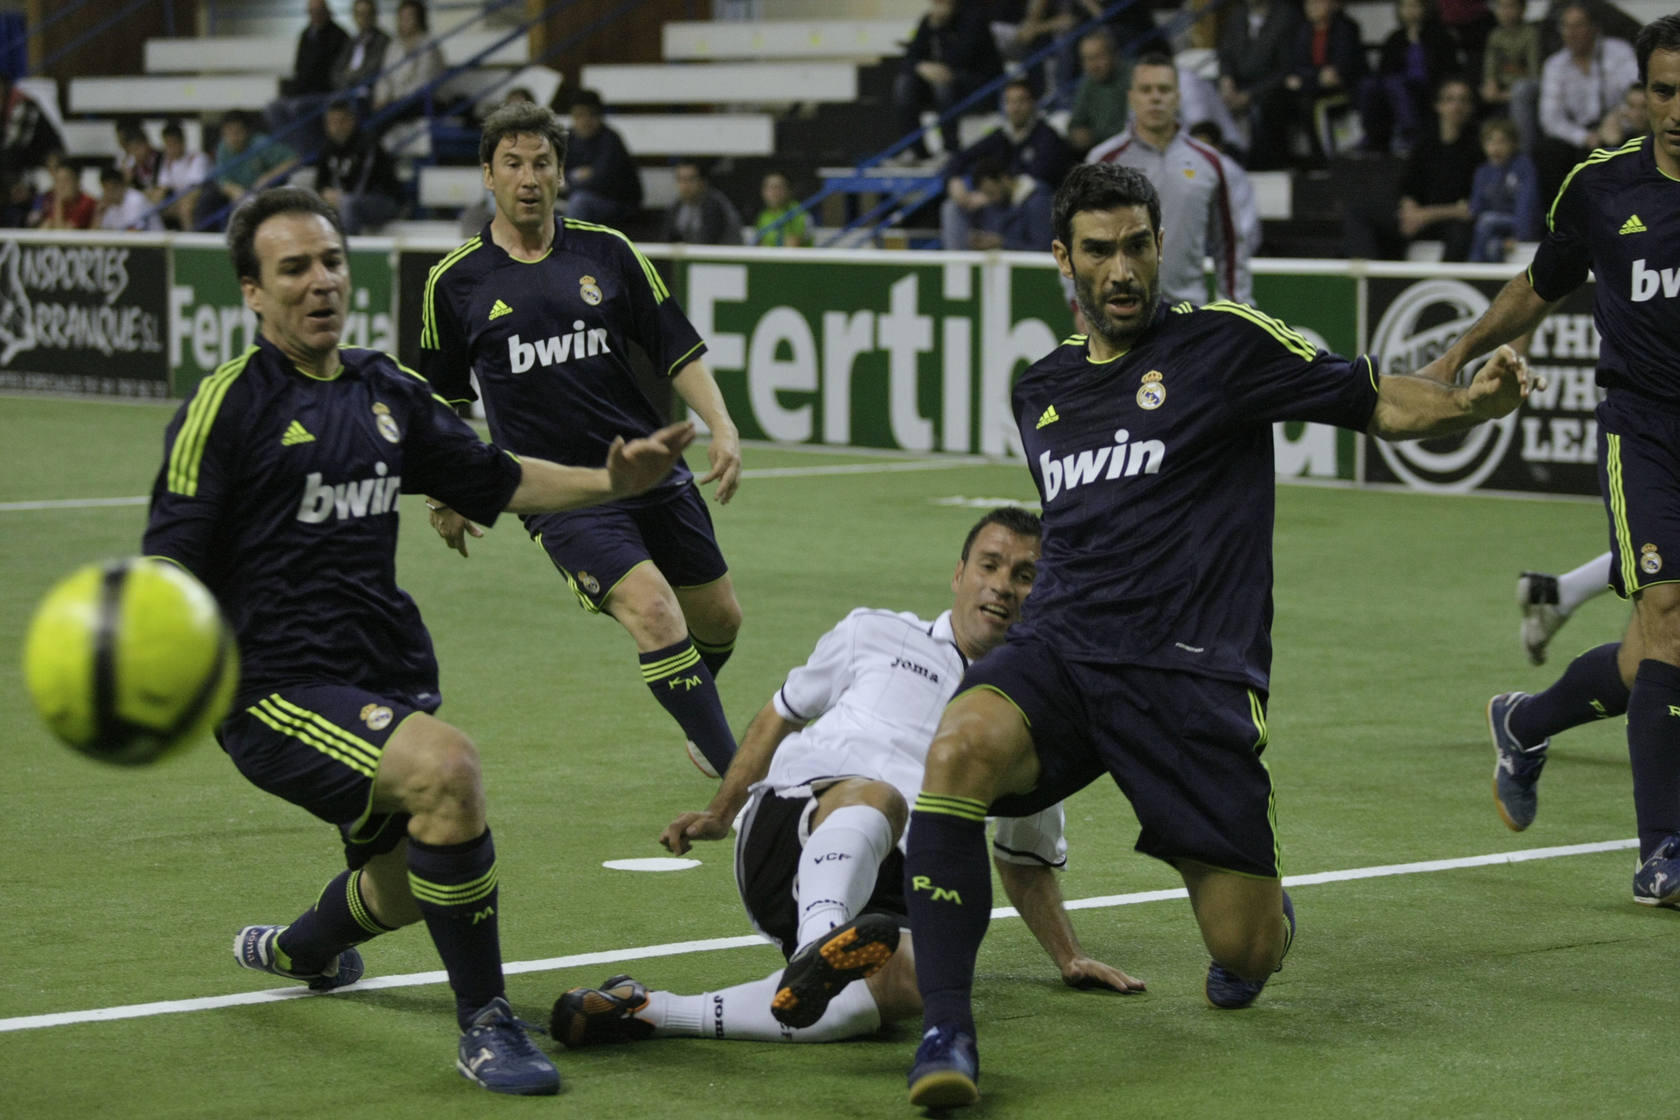 Fútbol Indoor en Gandia (Valencia-Real Madrid)